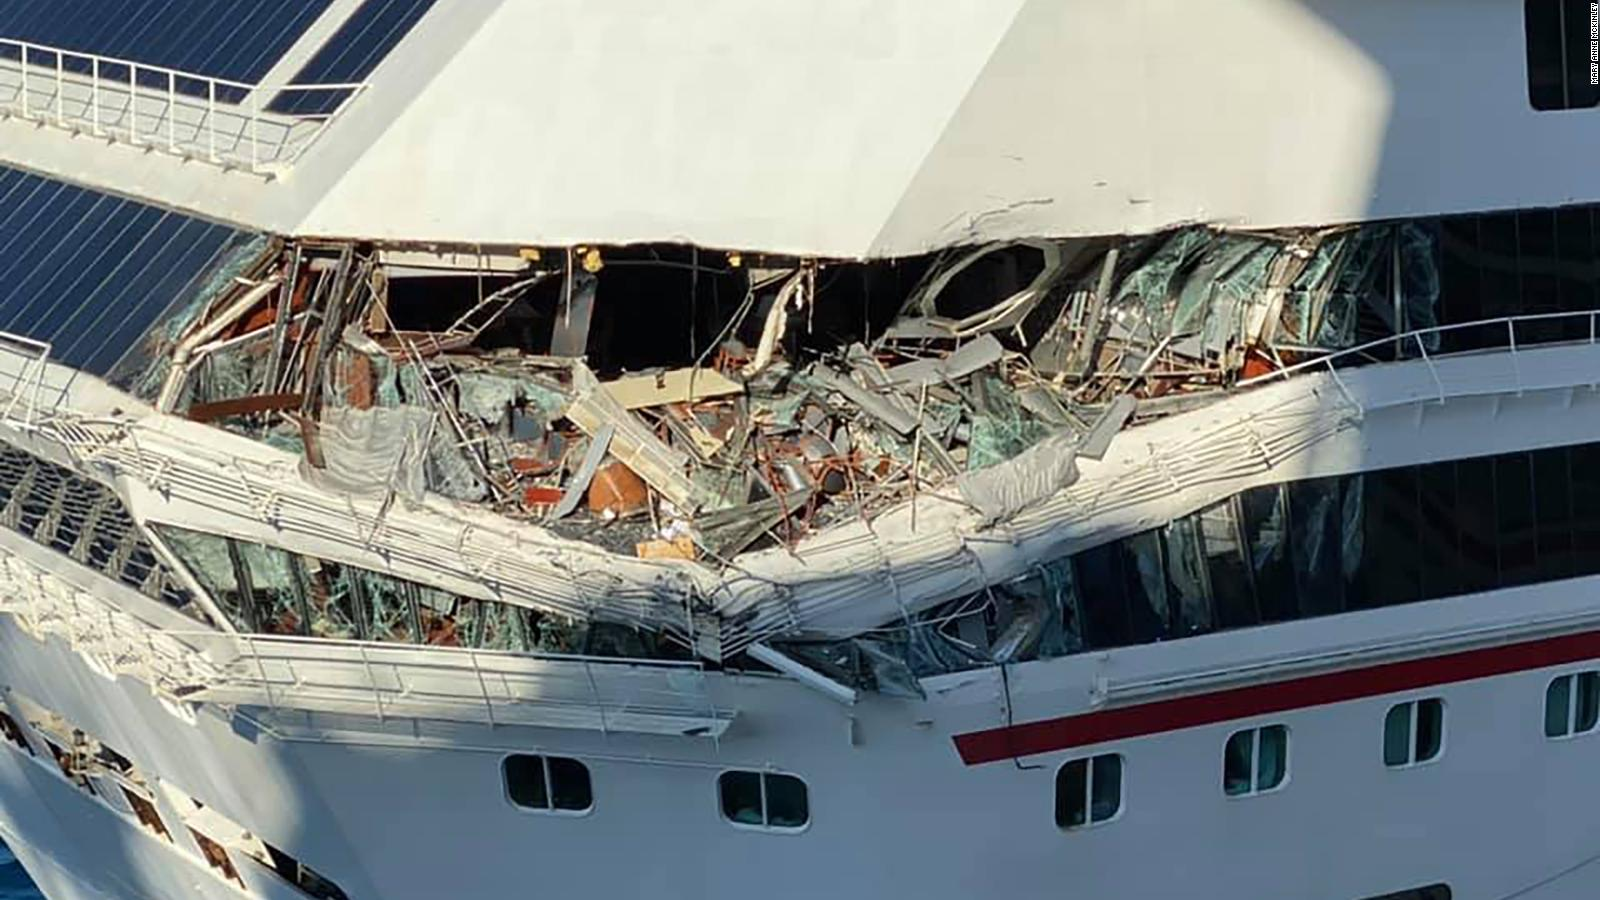 Carnival Glory Is Headed Back To New Orleans After Colliding With Another Cruise Ship In Mexico Cnn